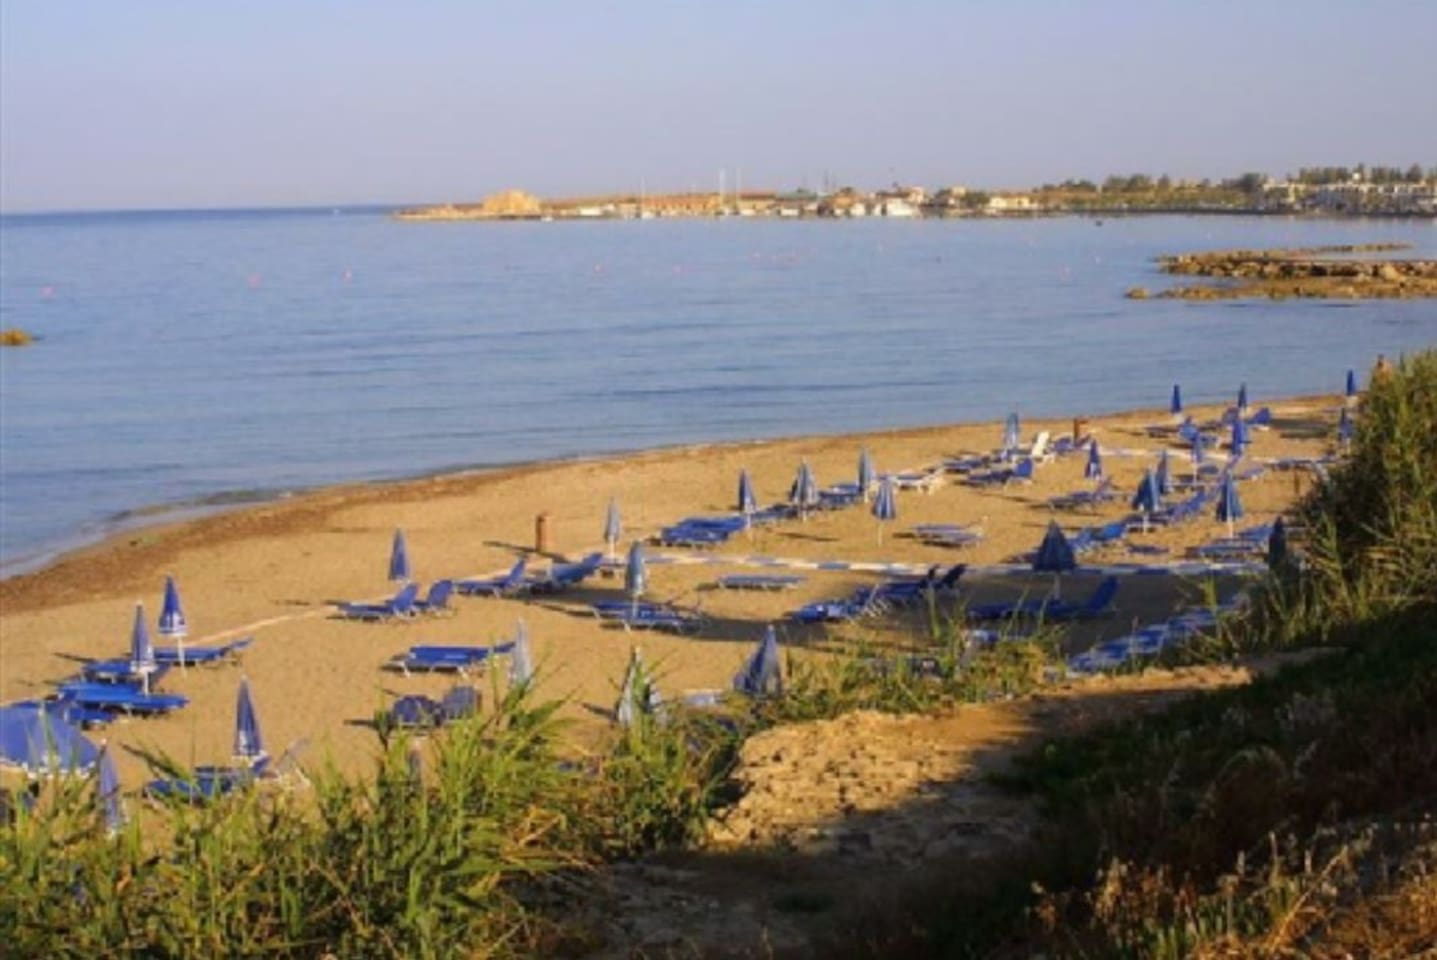 Municipal sandy beach of Paphos. Less than 150 meters from apartment.